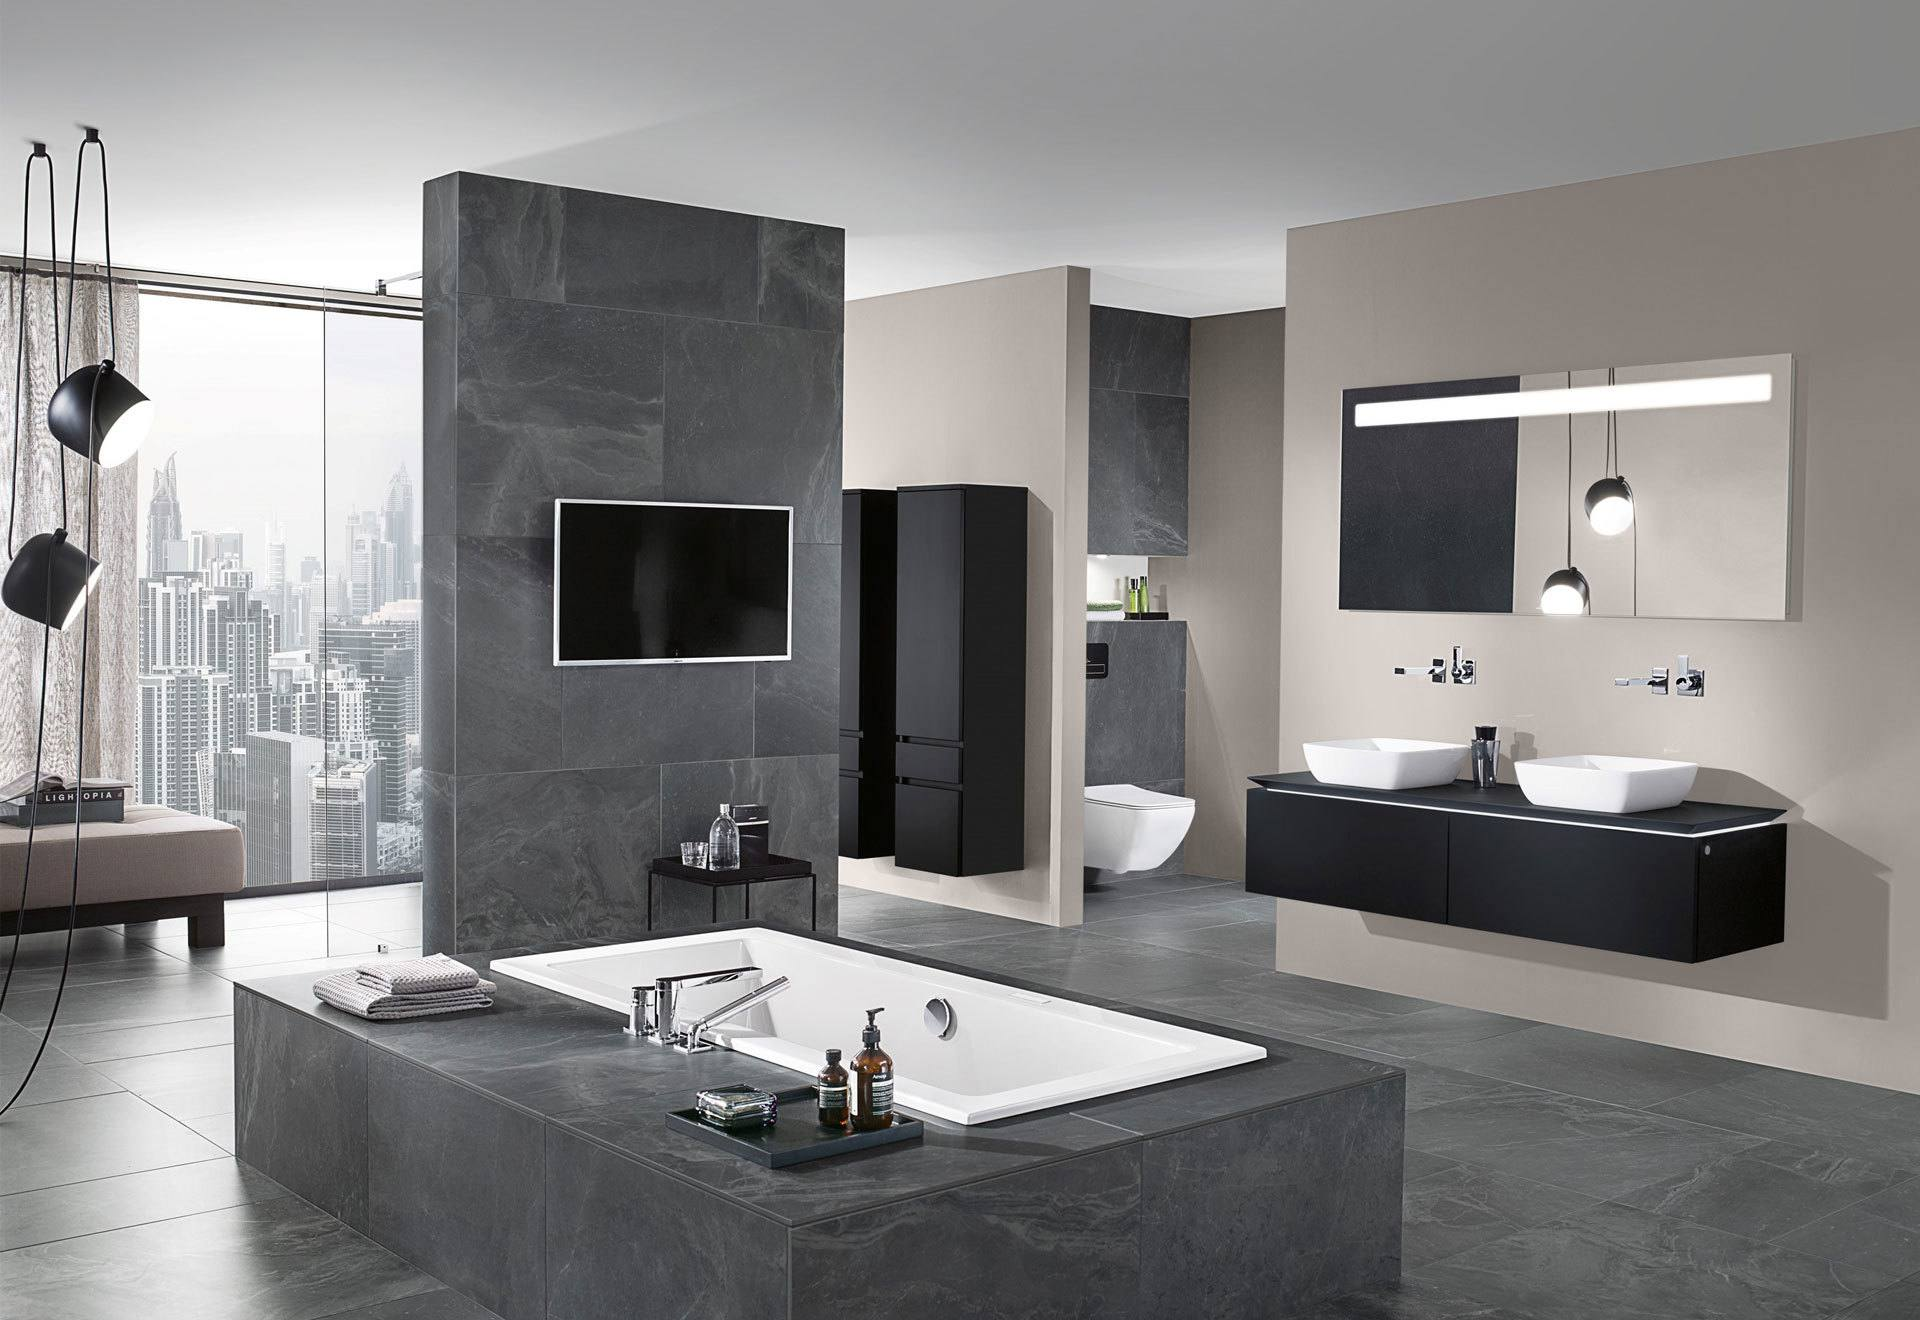 Bathroom Design In Bolton | Chroley | Standish | Darwen | Westhoughton